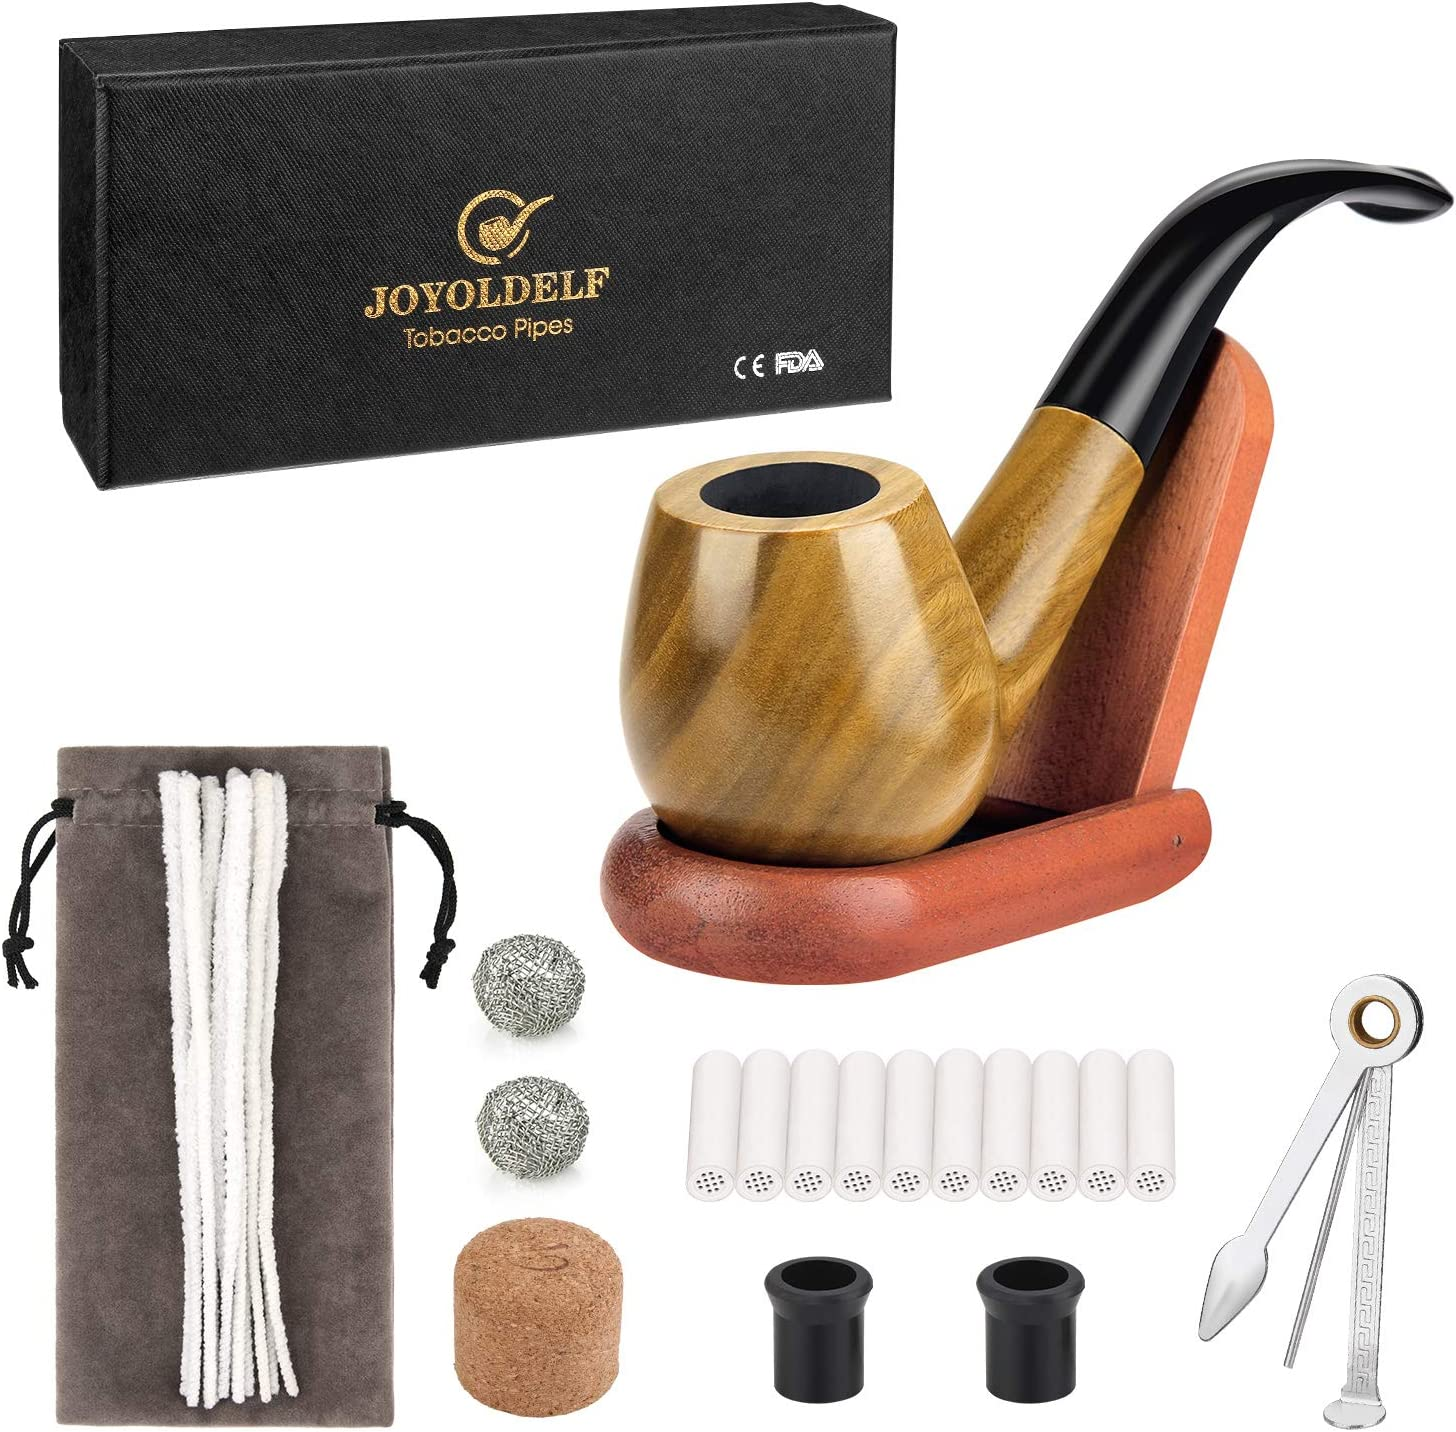 Joyoldelf Tobacco Smoking Pipe Set with Wooden Stand, 3-in-1 Pipe Scraper, 10 Pipe Cleaners & Pipe Filters, 2 Pipe Bits & Metal Balls, Cork Knocker, Bonus a Pipe Pouch